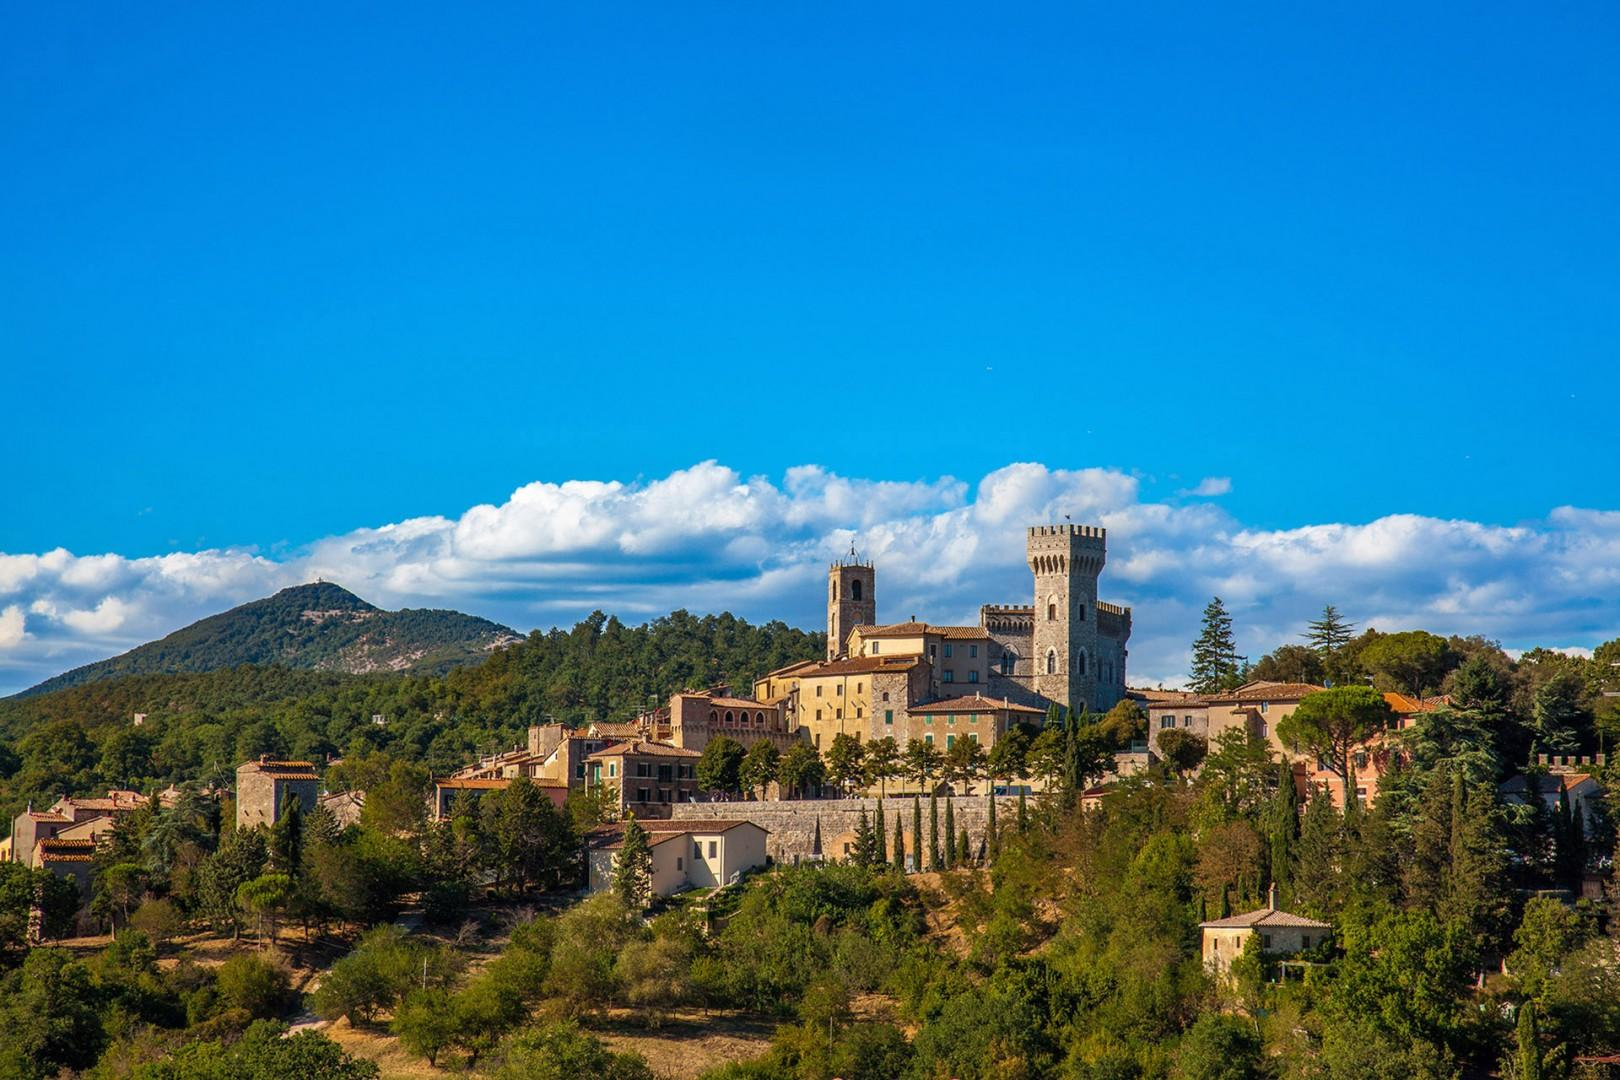 The town of San Casciano dei Bagni is as picturesque can be.